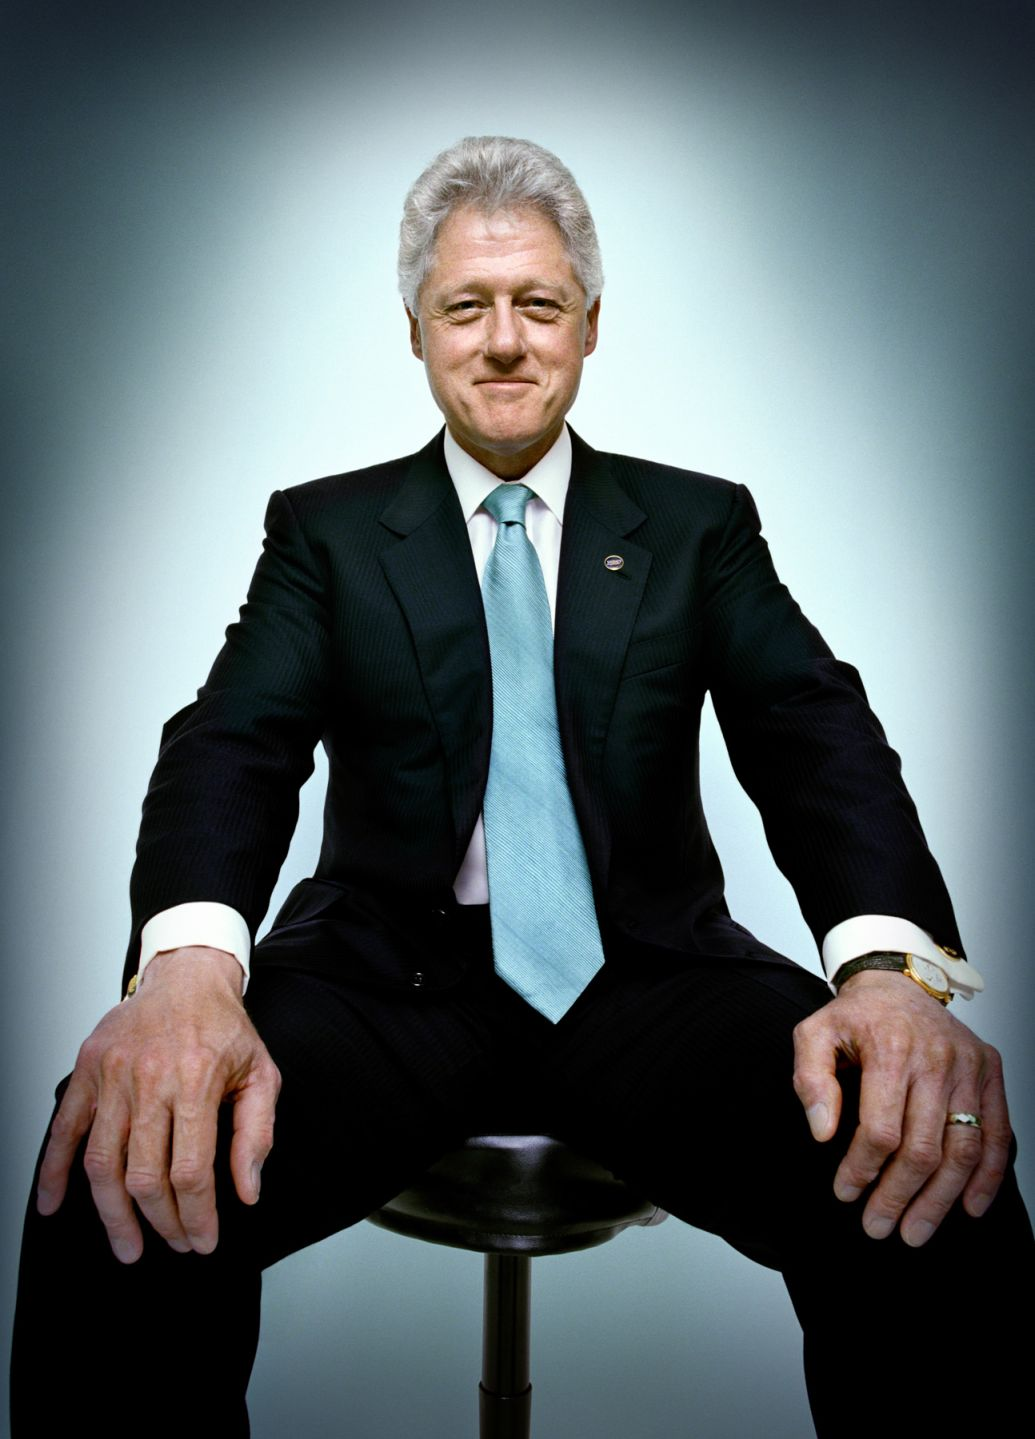 Bill Clinton portrait photography